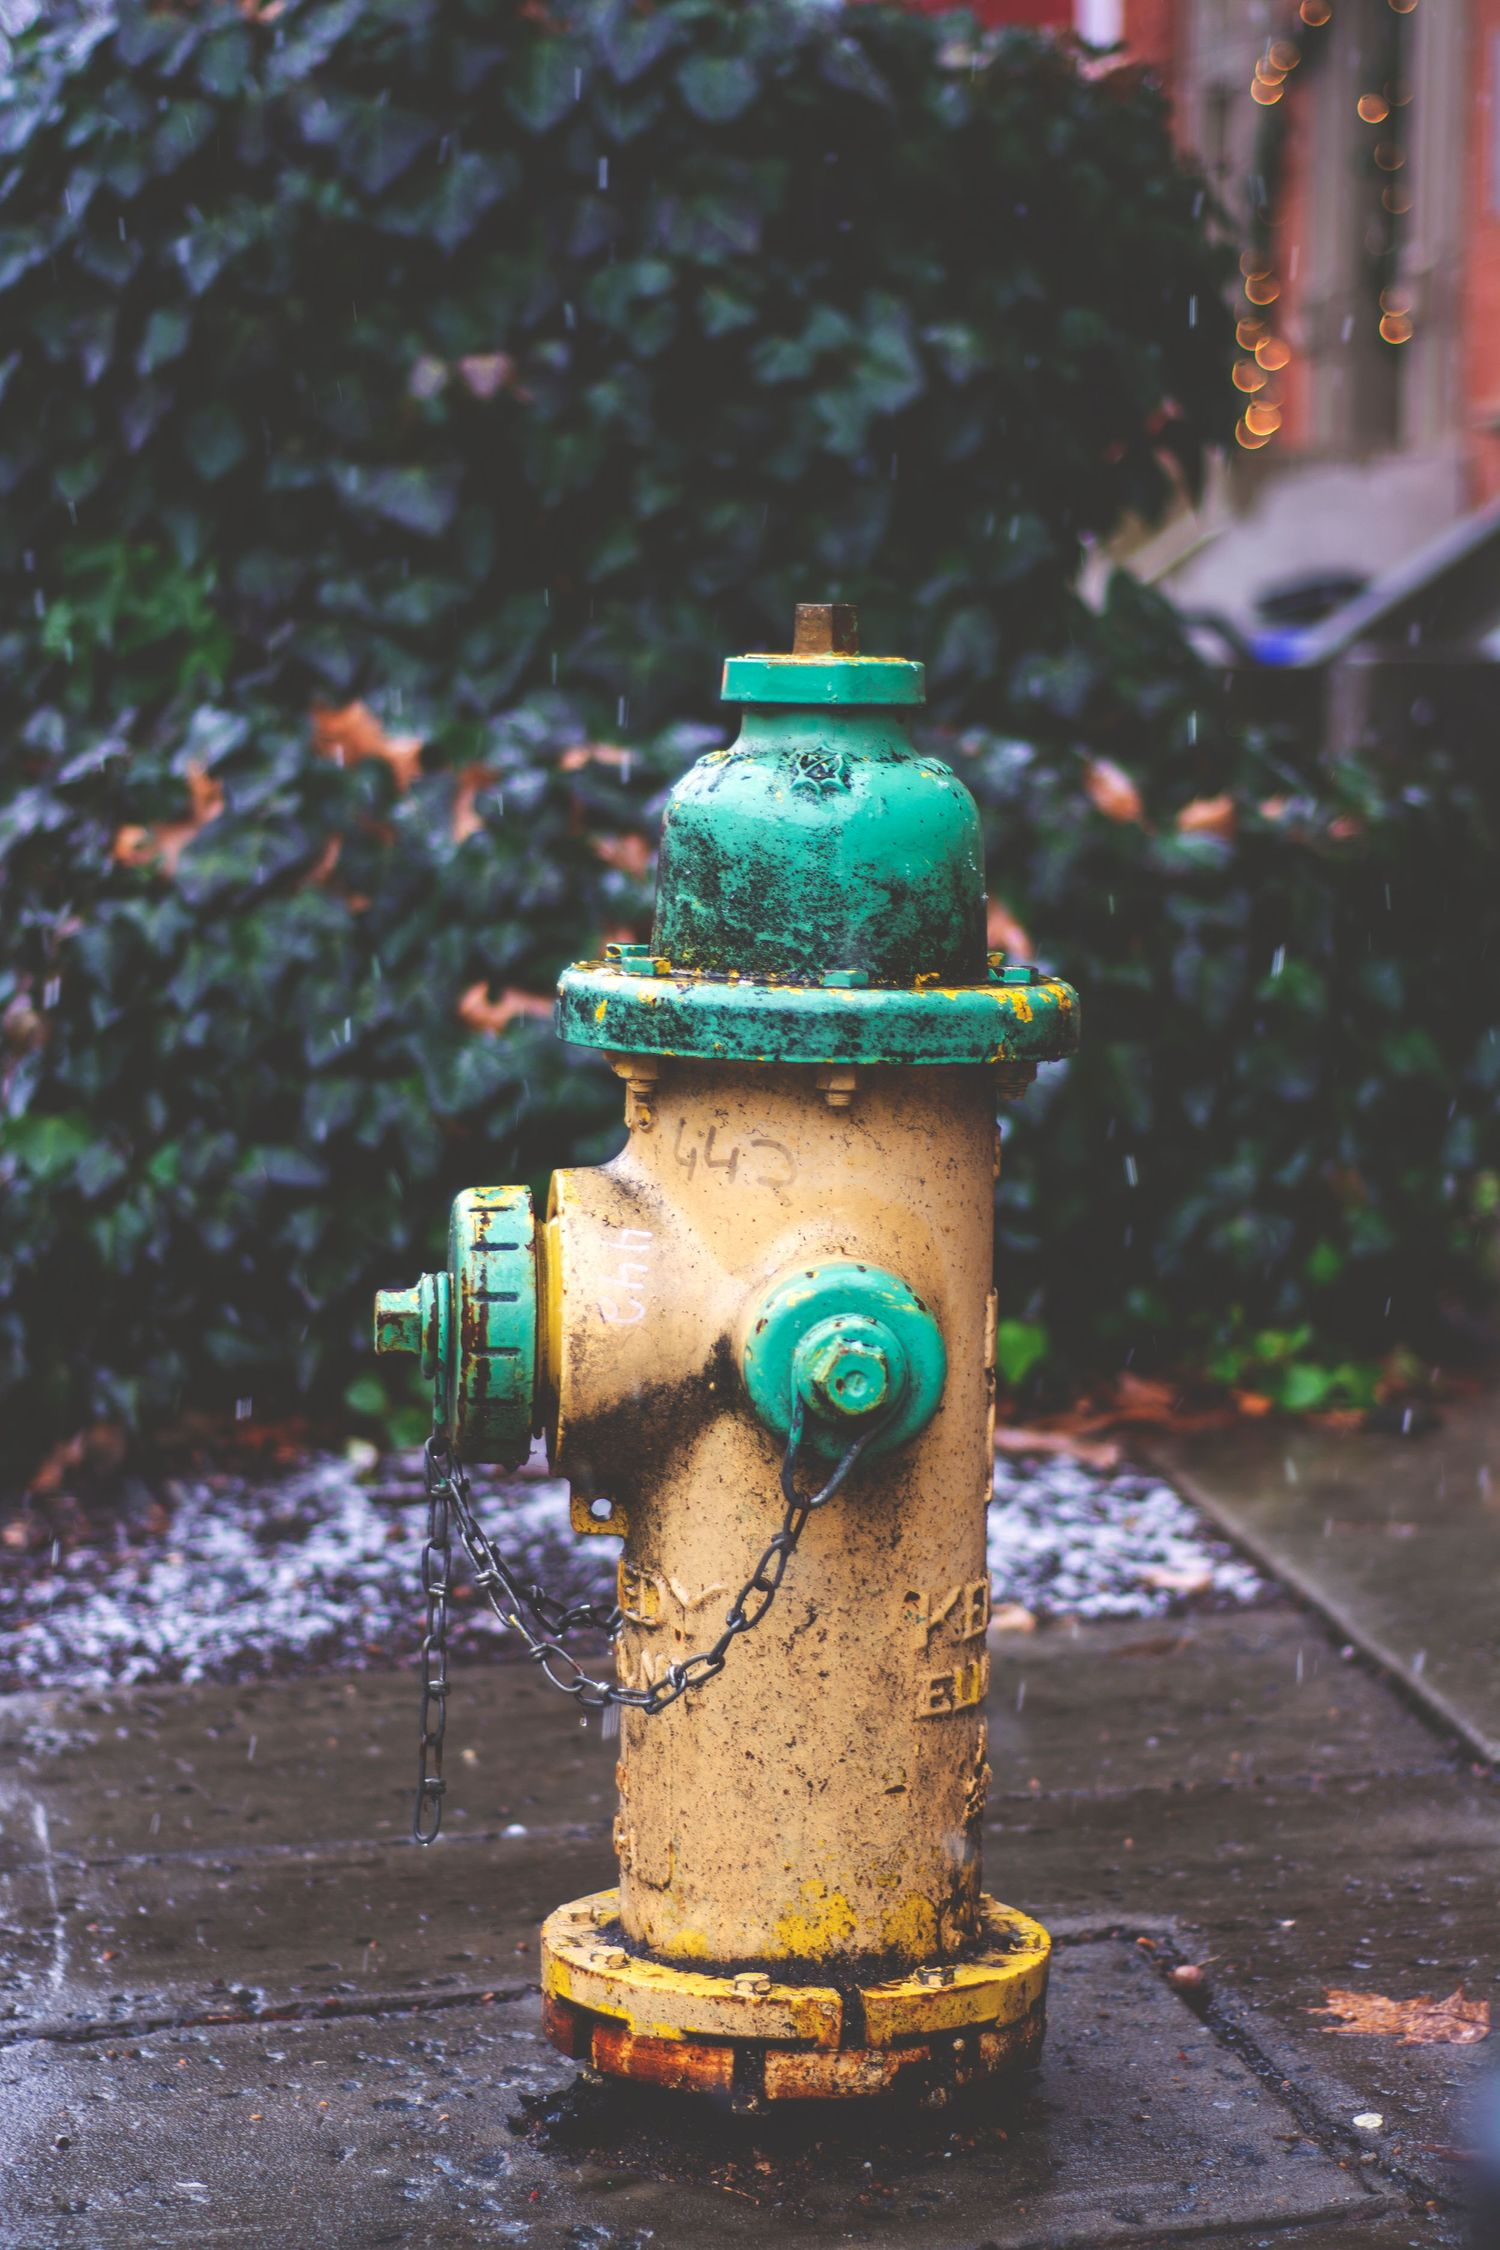 A green and yellow fire hydrant.